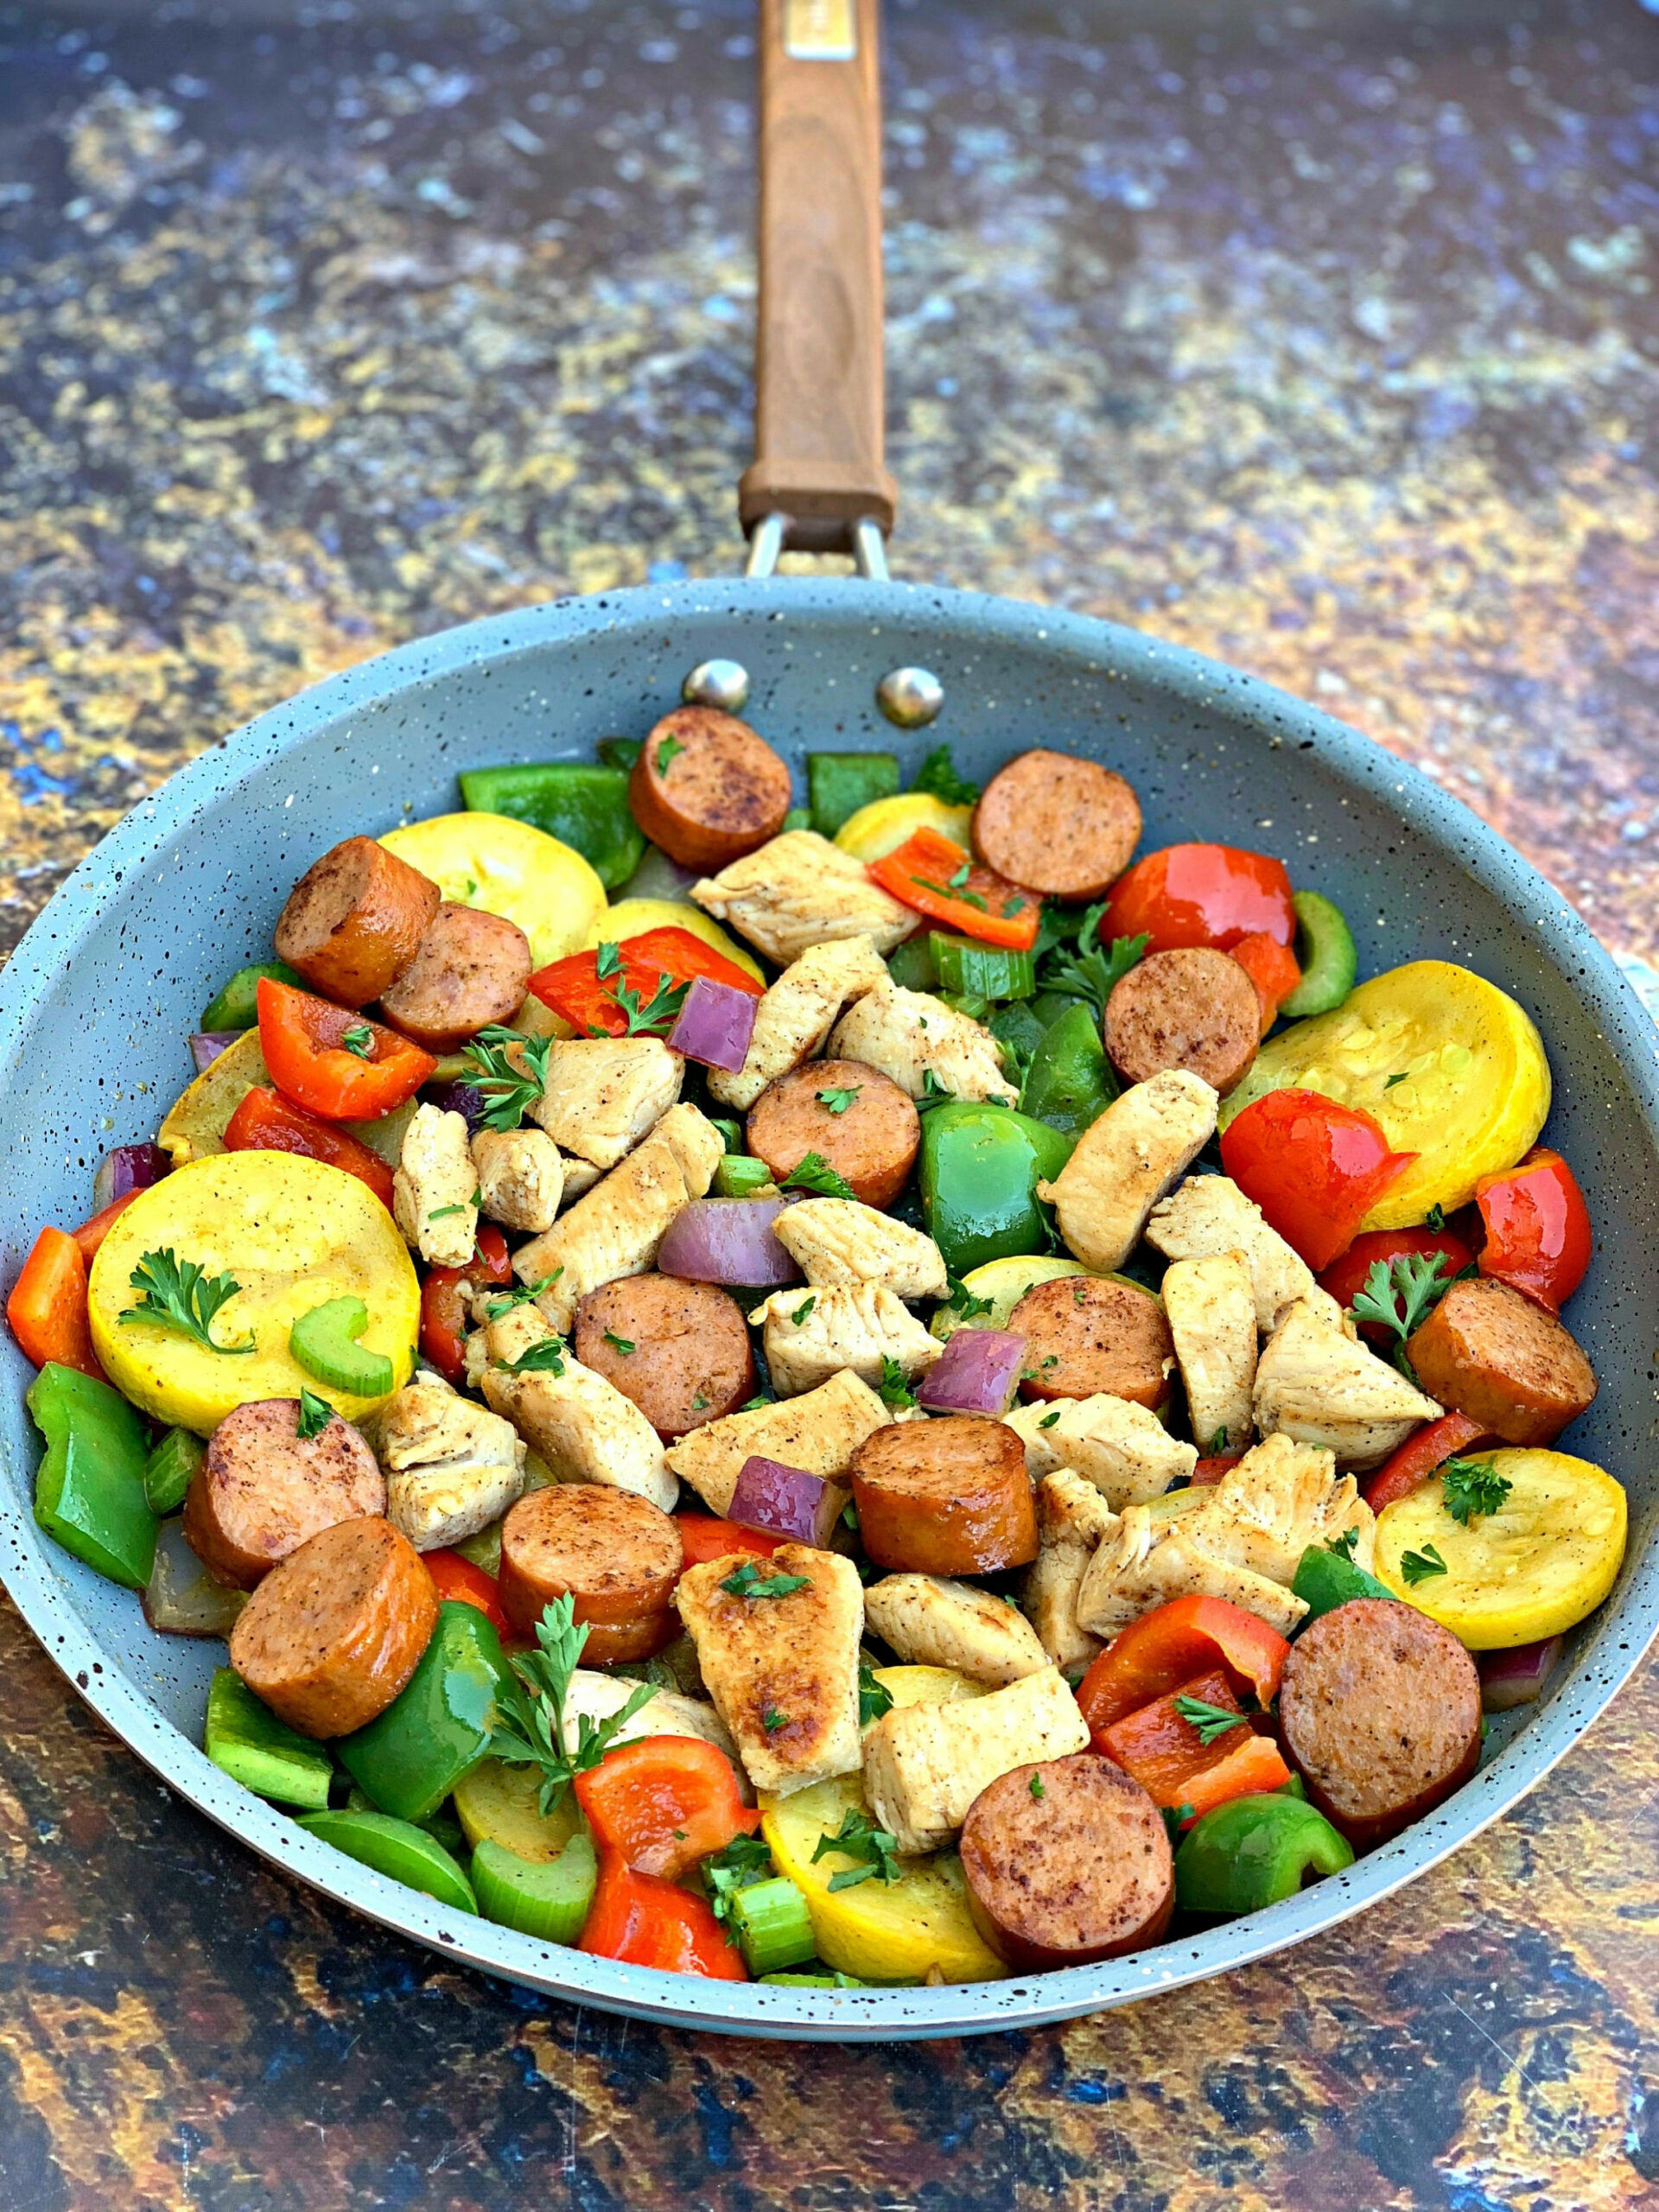 Keto Low-Carb Cajun Chicken, Sausage, and Vegetable Skillet - chicken recipes zucchini squash